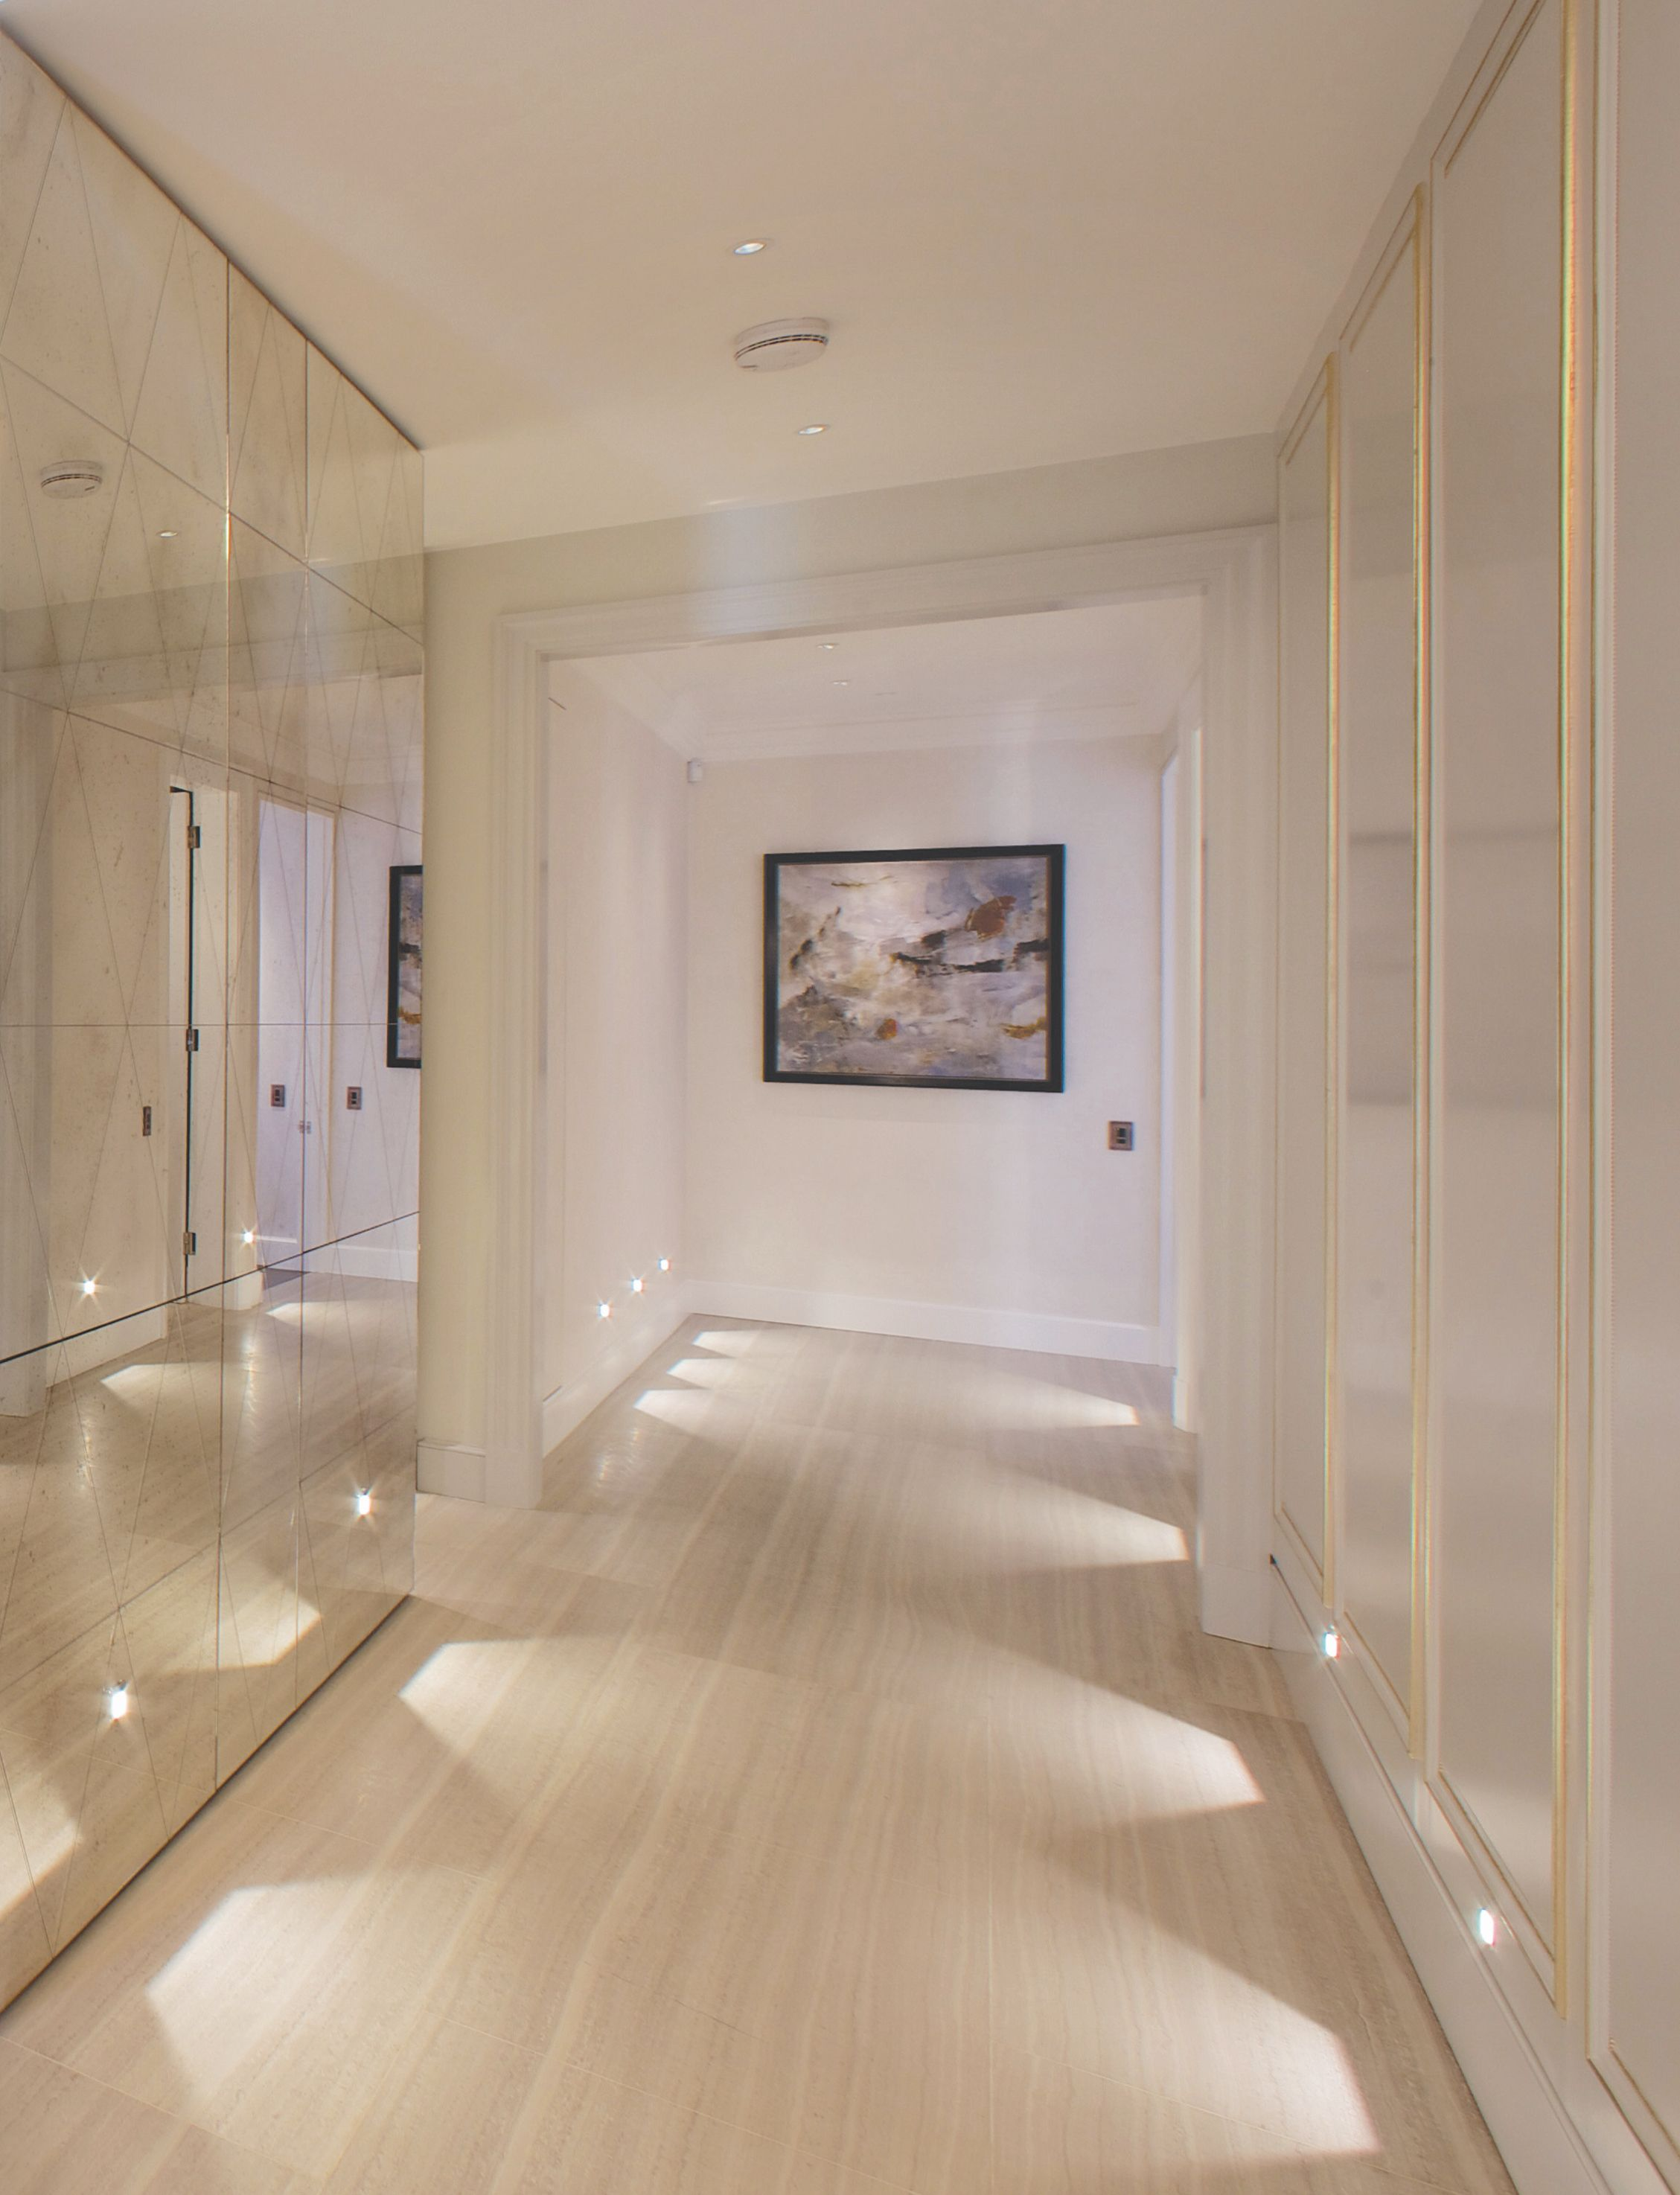 Antique Mirrors And Statement Floor Level Lighting Add A